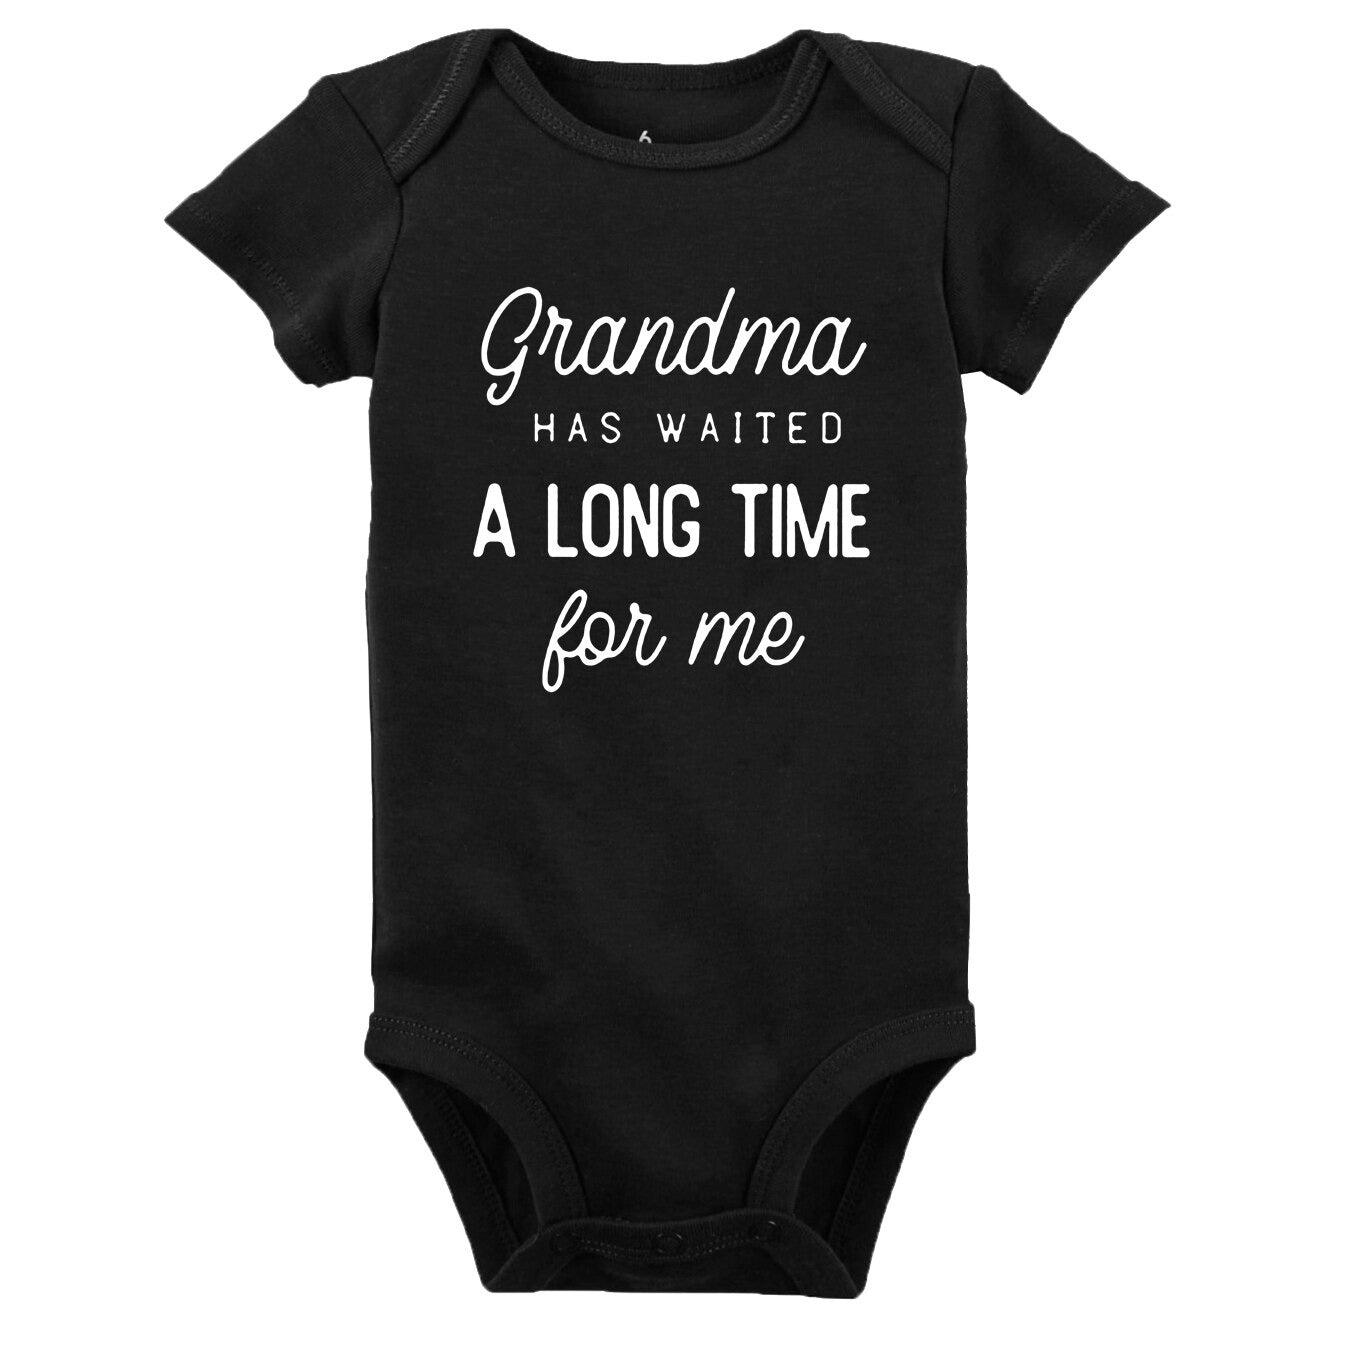 ong-time-letter-printing-new-born-baby-c_description-3